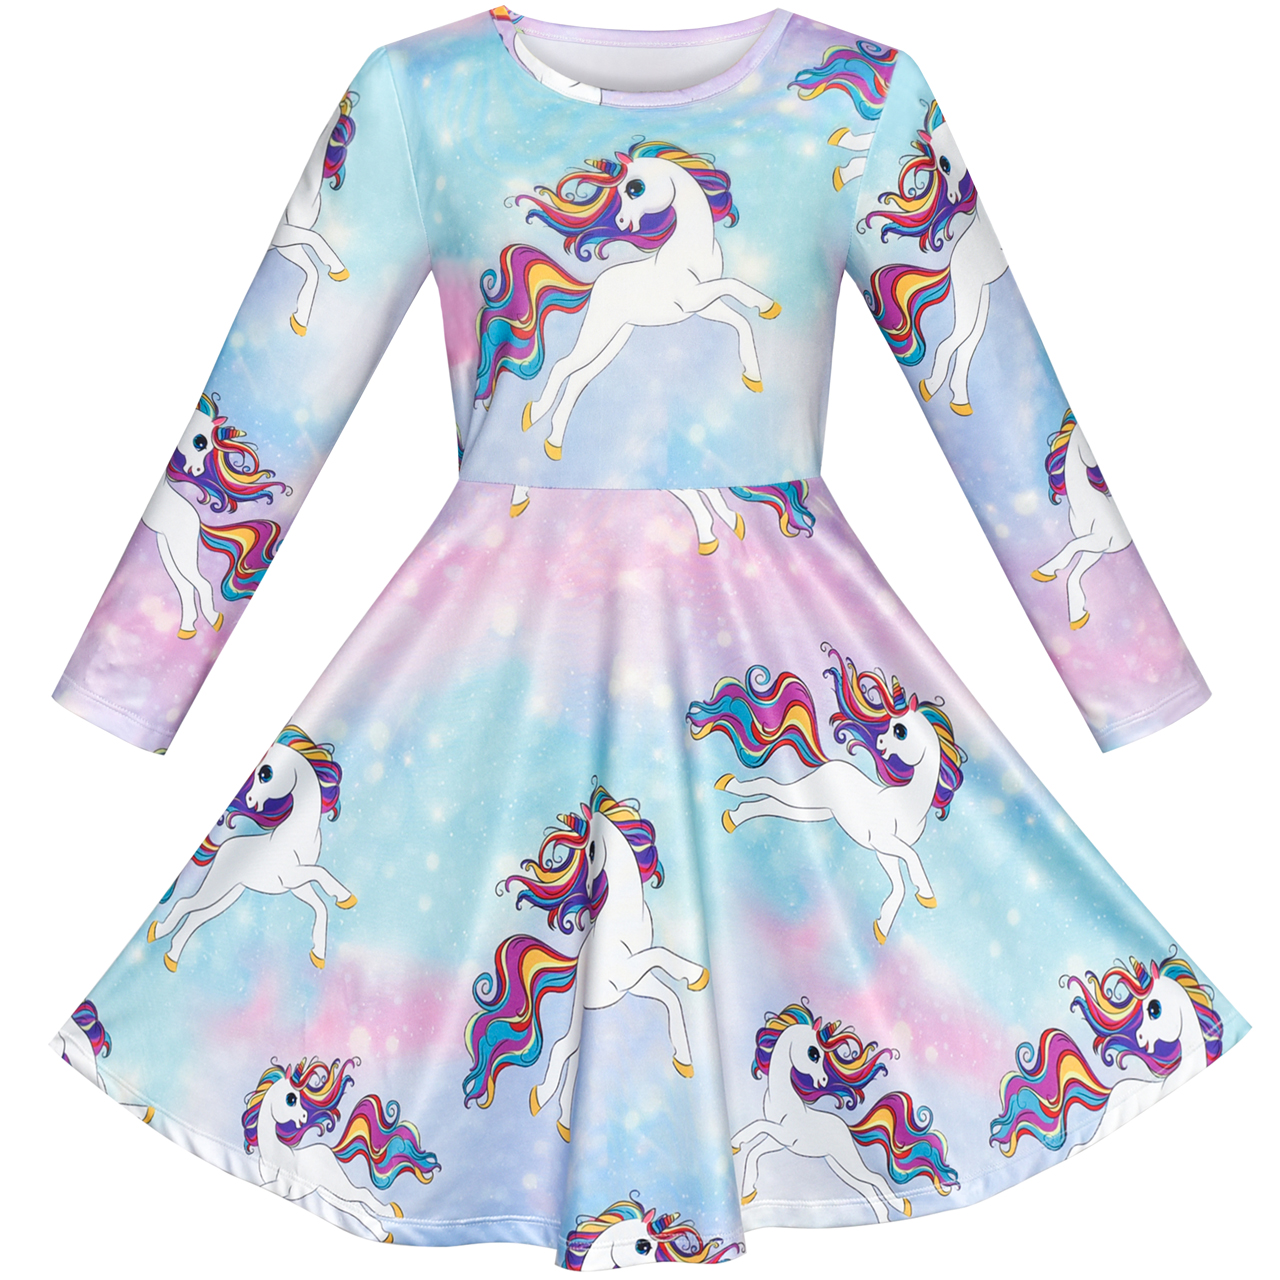 Toddler Kids Baby Girl Clothes Long Sleeve Unicorn Dress Striped Skirt Princess Casual Outfit